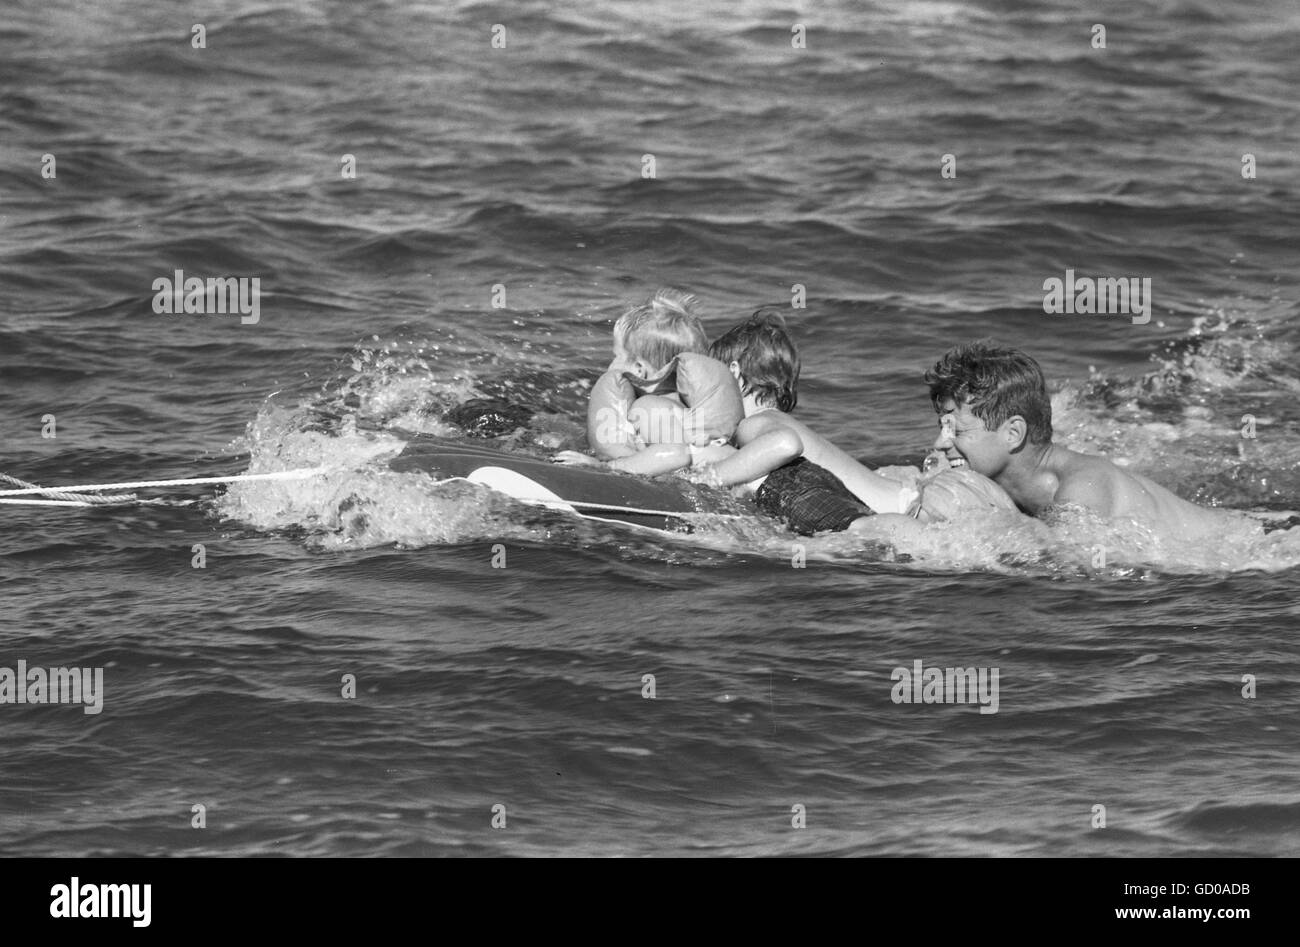 John F. Kennedy with children, swimming - Stock Image